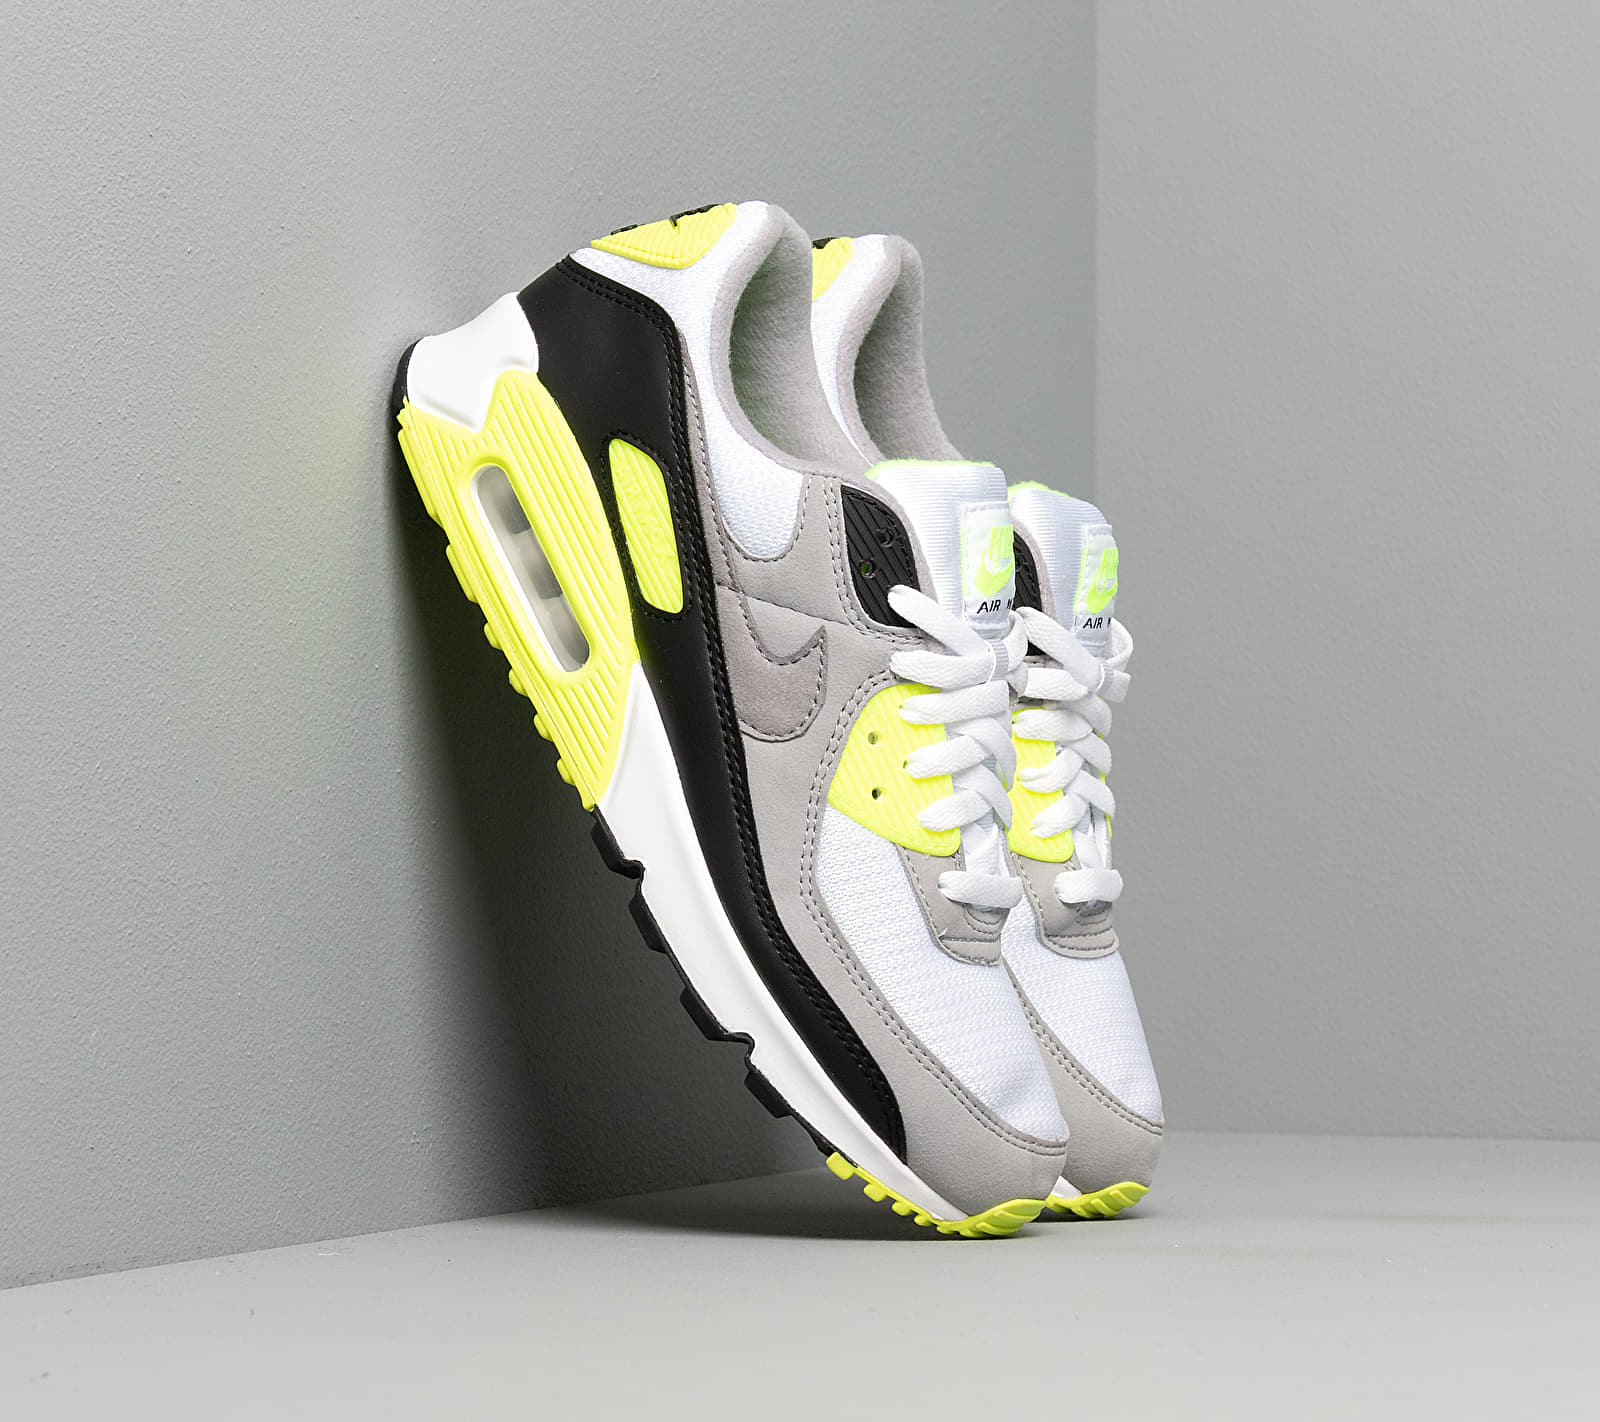 Nike Air Max 90 White/ Particle Grey-Volt-Black EUR 38.5